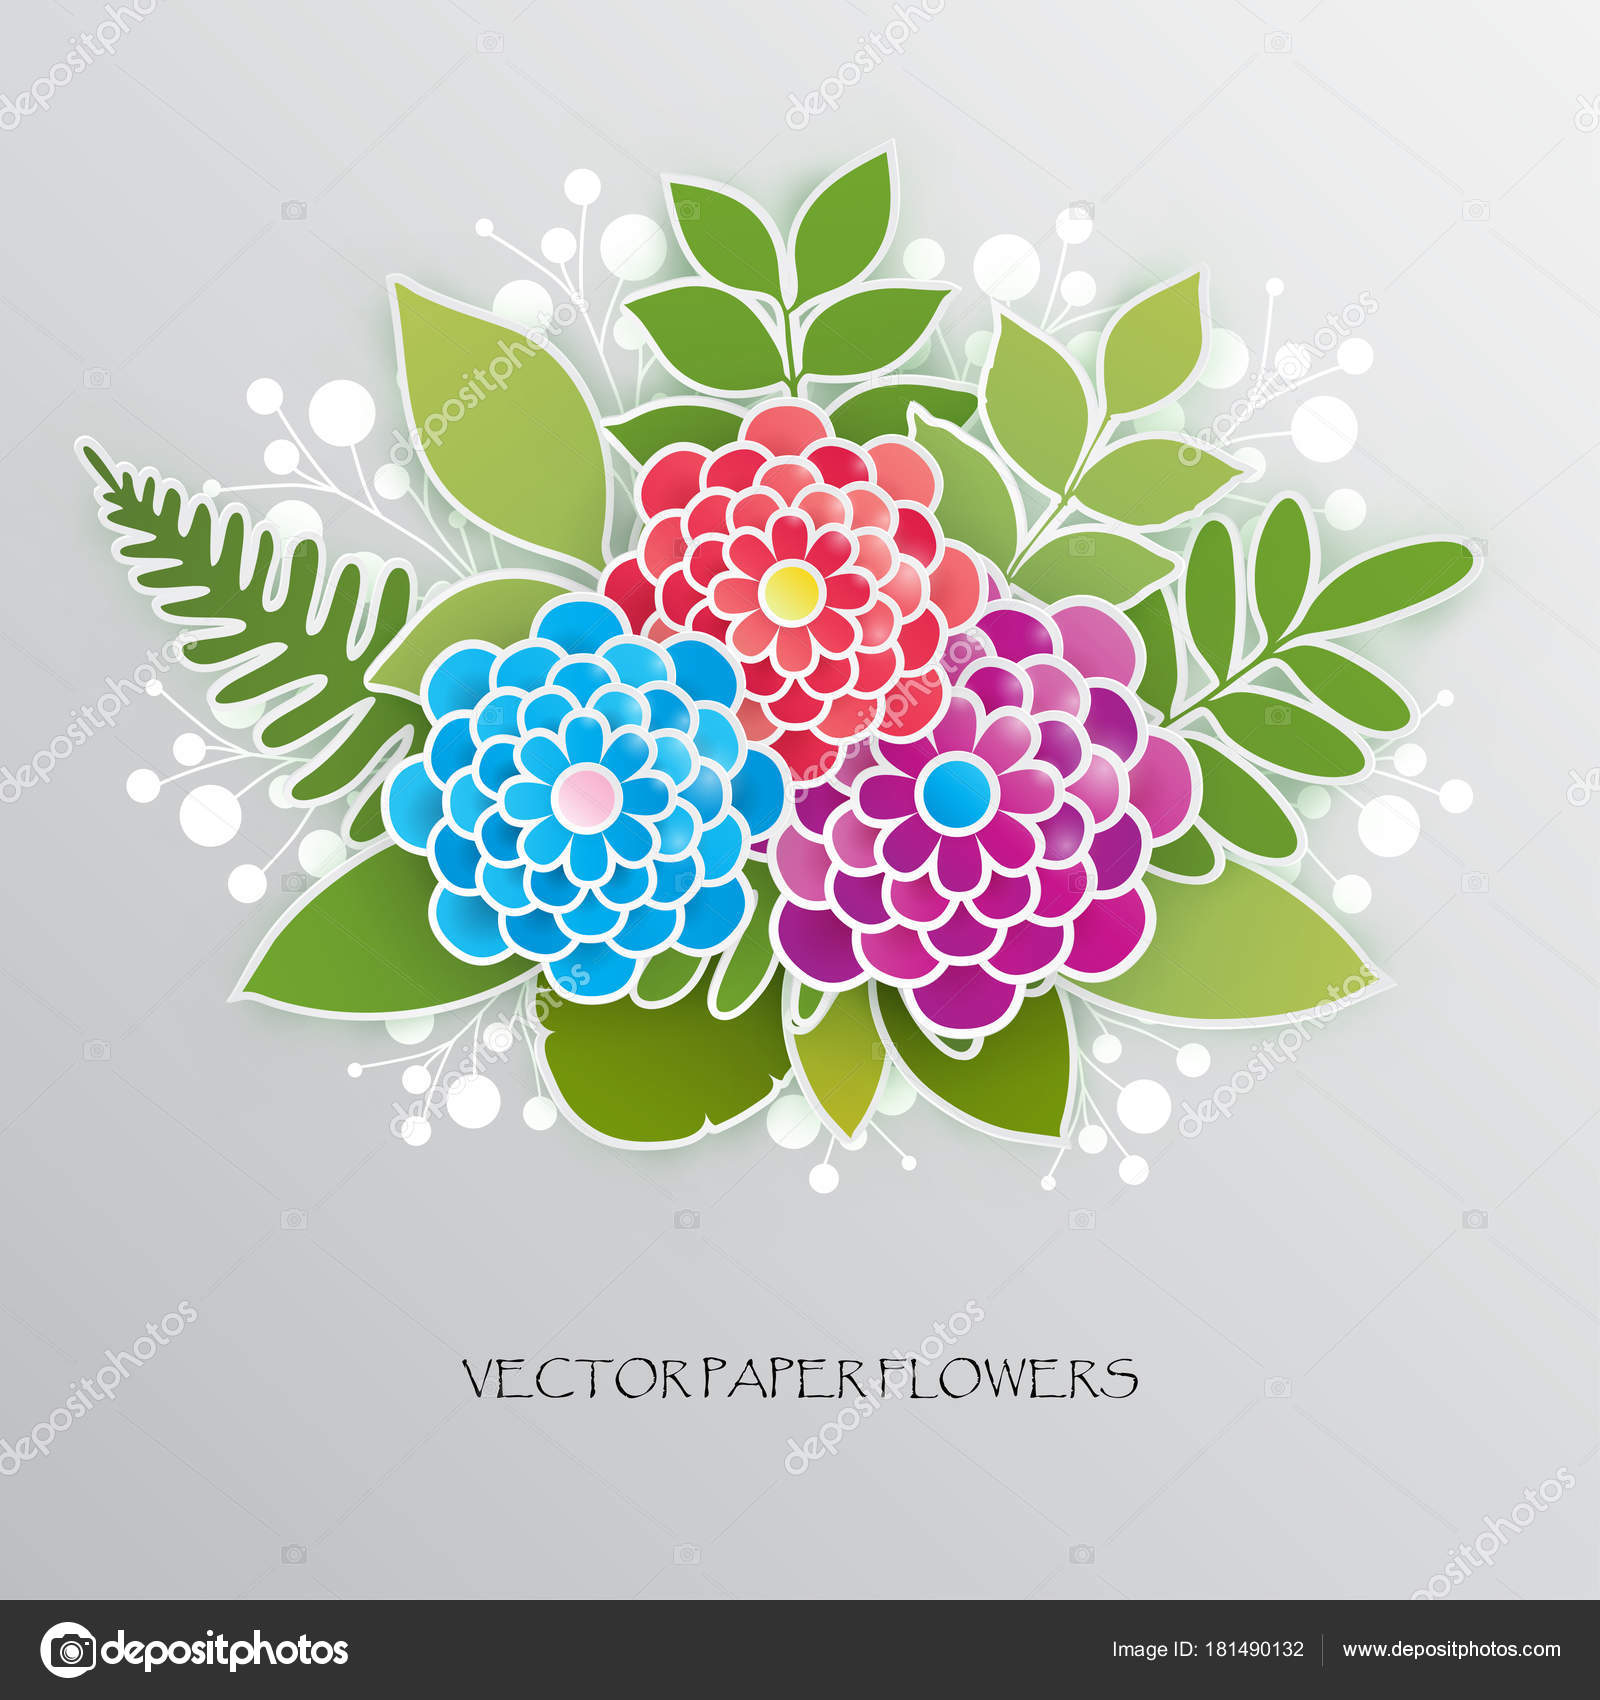 Elegant Floral Background With 3d Paper Flowers And Leaves Stock